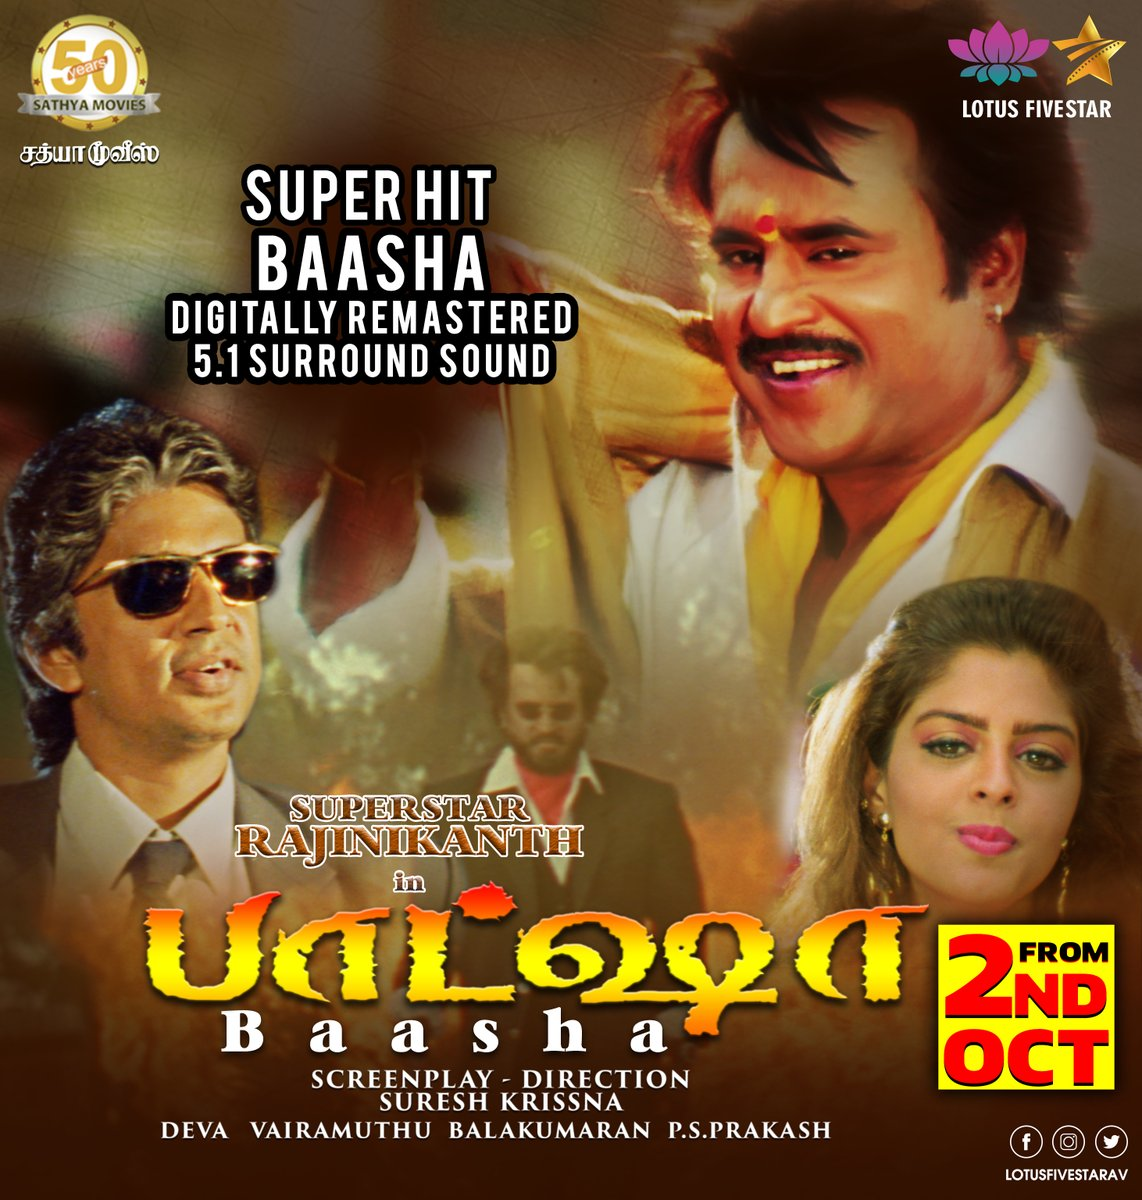 [ Calling out all THALAIVAR Fans! ]  Ever wanted to watch the RESTORED HD VERSION OF ACTION BLOCKBUSTER BAASHA by Thalaivar Superstar Rajinikanth in 5.1 surround sound?  WE HEARD YOU! Watch BAASHA, at LFS Cinemas this week.  #Baasha #SuperStar #SuperStarRajinikanth #Rajinikanth https://t.co/tyoAmfjKb5